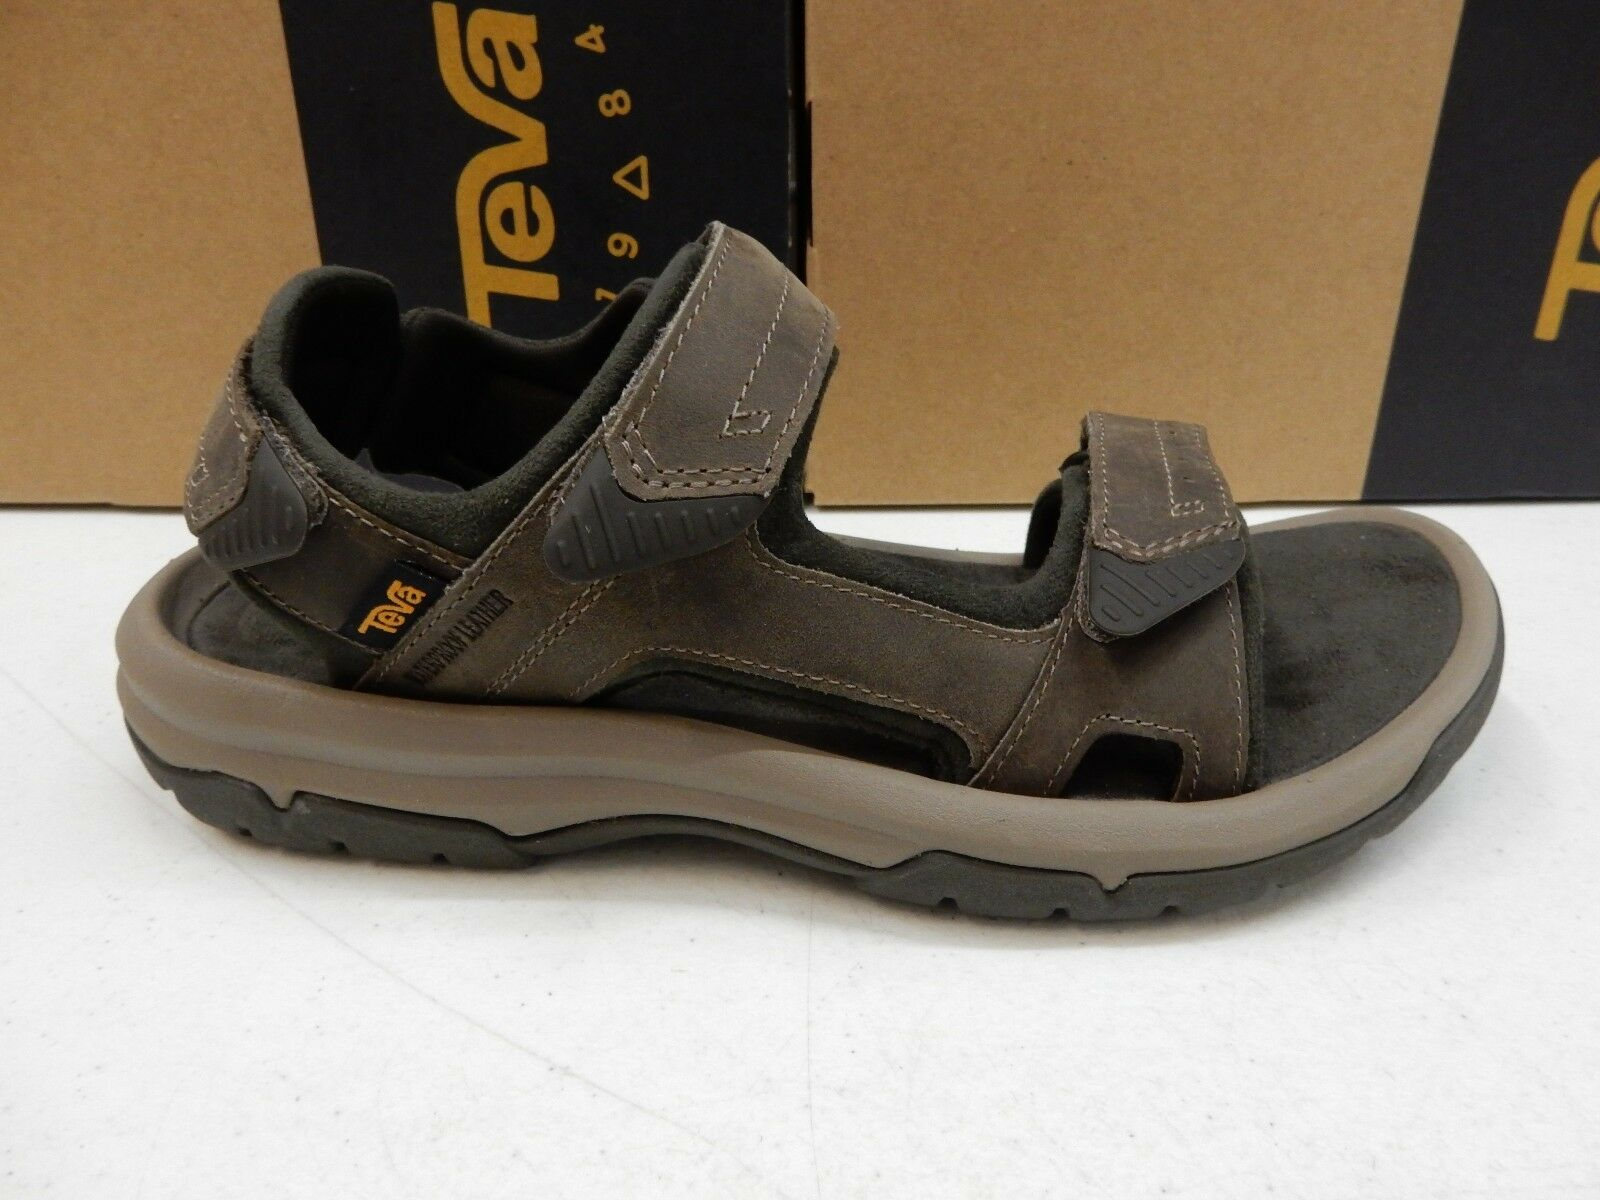 TEVA MENS SANDALS LANGDON SANDAL WALNUT SIZE 11